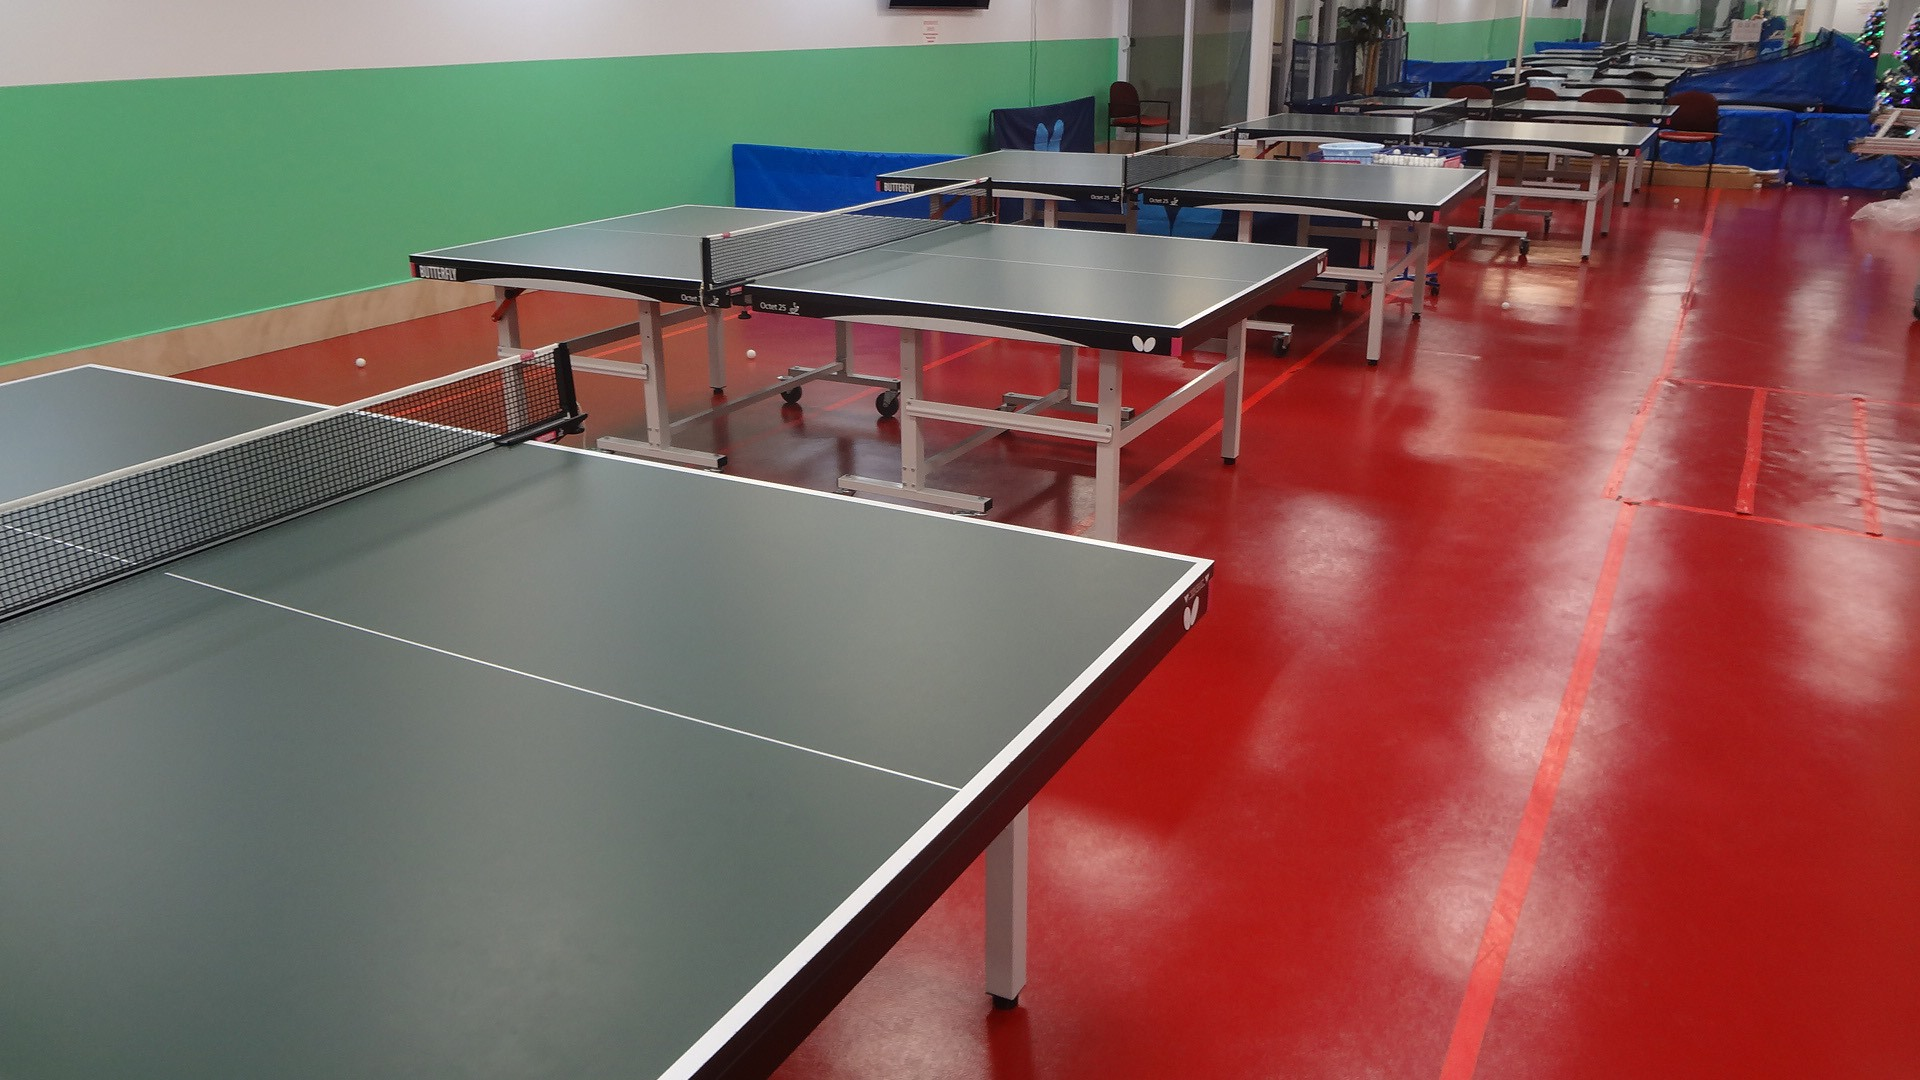 Astounding Table Tennis And Ping Pong Clubs In North America Download Free Architecture Designs Intelgarnamadebymaigaardcom